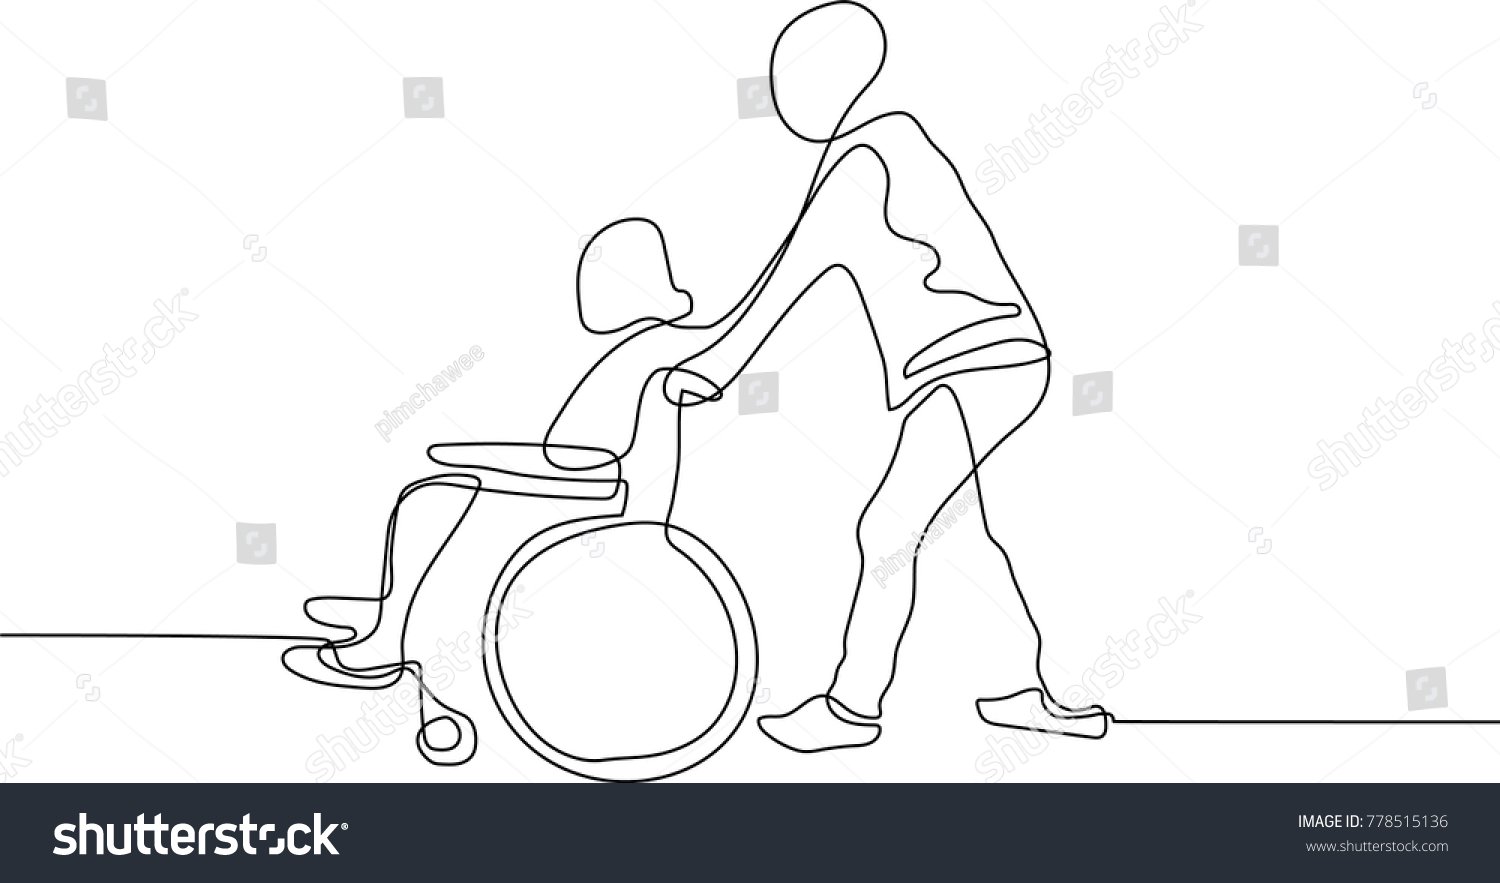 Line Drawing Of People Pushing Wiring Diagrams Dcac Solid State Relay Or Ssr Del30008 Continuous Man Wheelchair Stock Vector Royalty Rh Shutterstock Com Drawings Cartoon